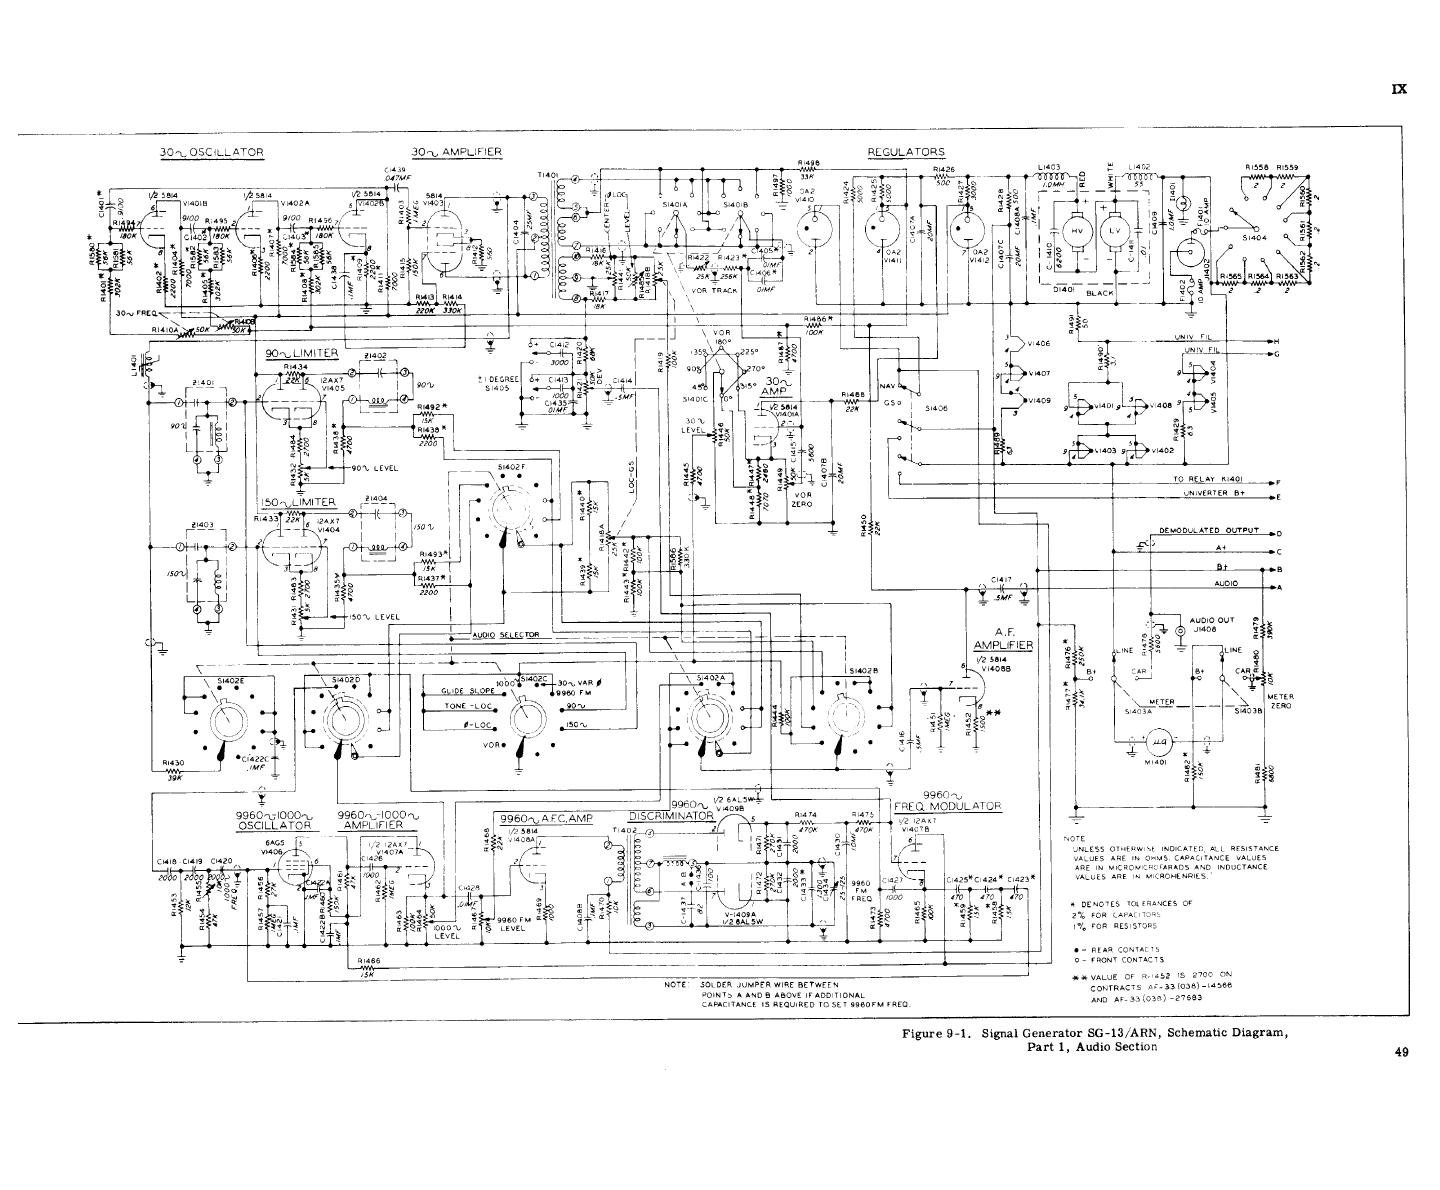 Signal Generator Schematic Free Download Wiring Diagrams Simple Function Circuit Figure 9 1 Sg 13 Arn Diagram Part Audio Selection At Frequency